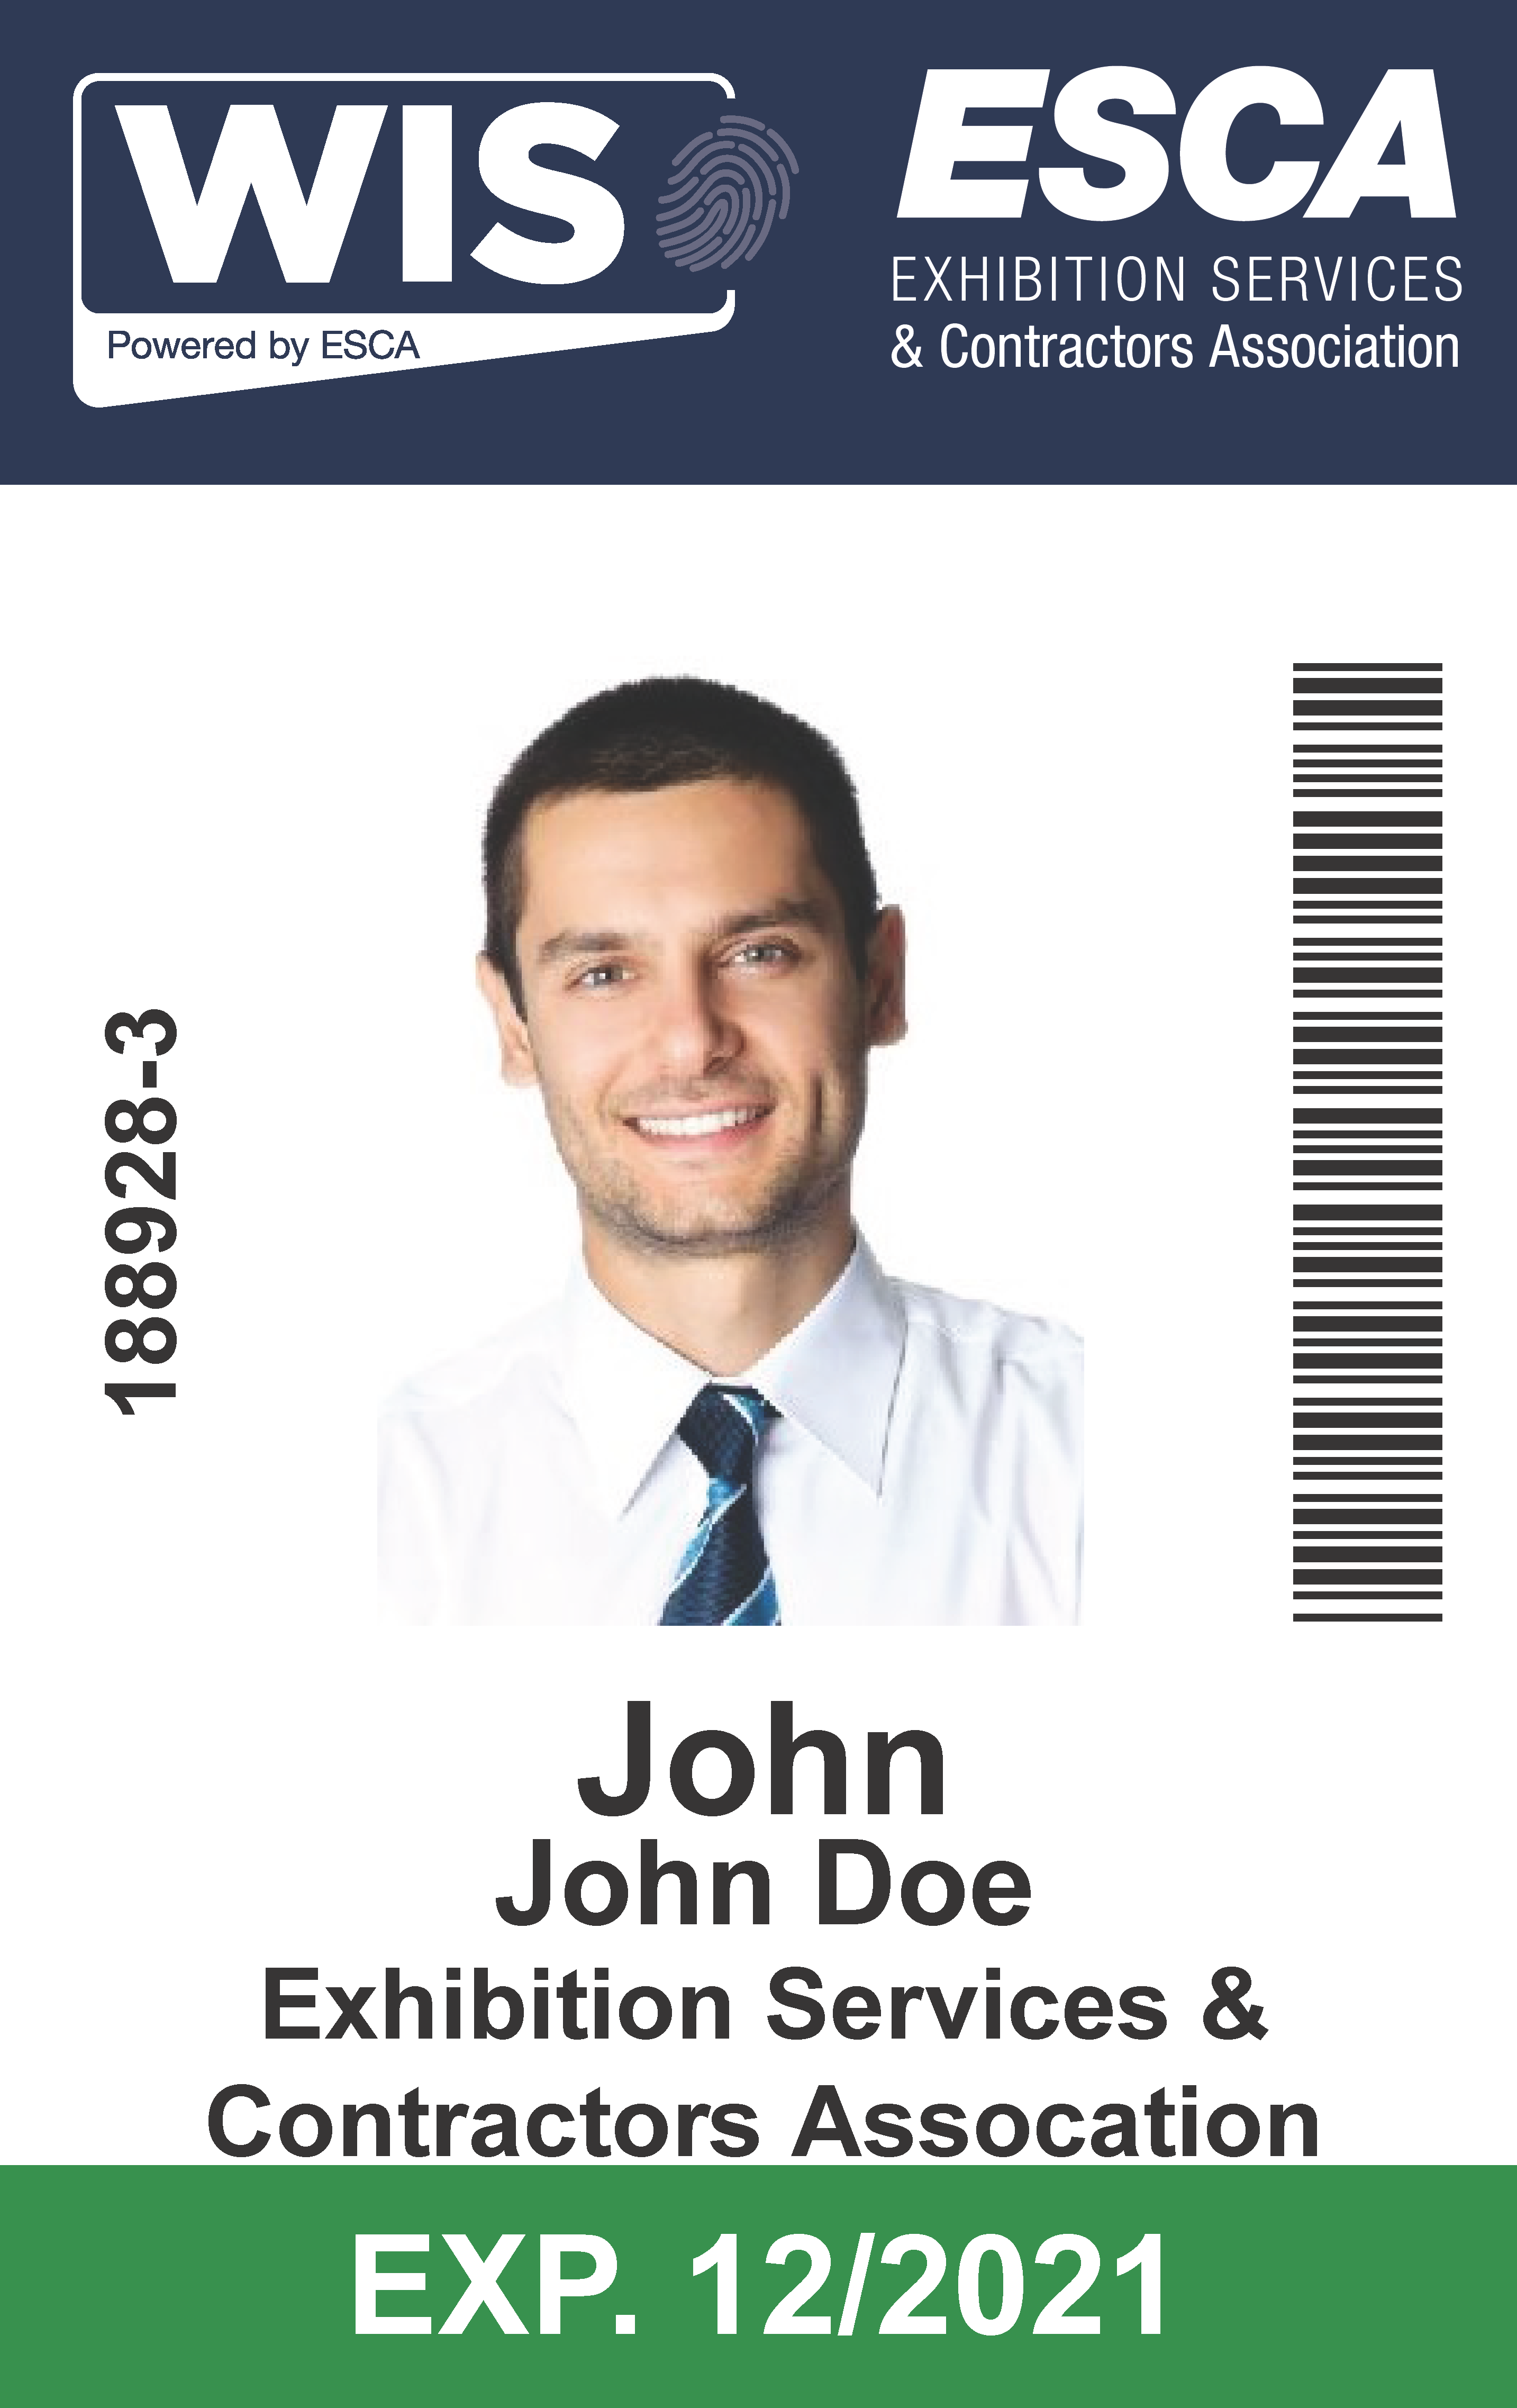 John doe sample 23be0656588ea60e17991e5085b17fb763005880d785392b0d2acb723f00d7e6